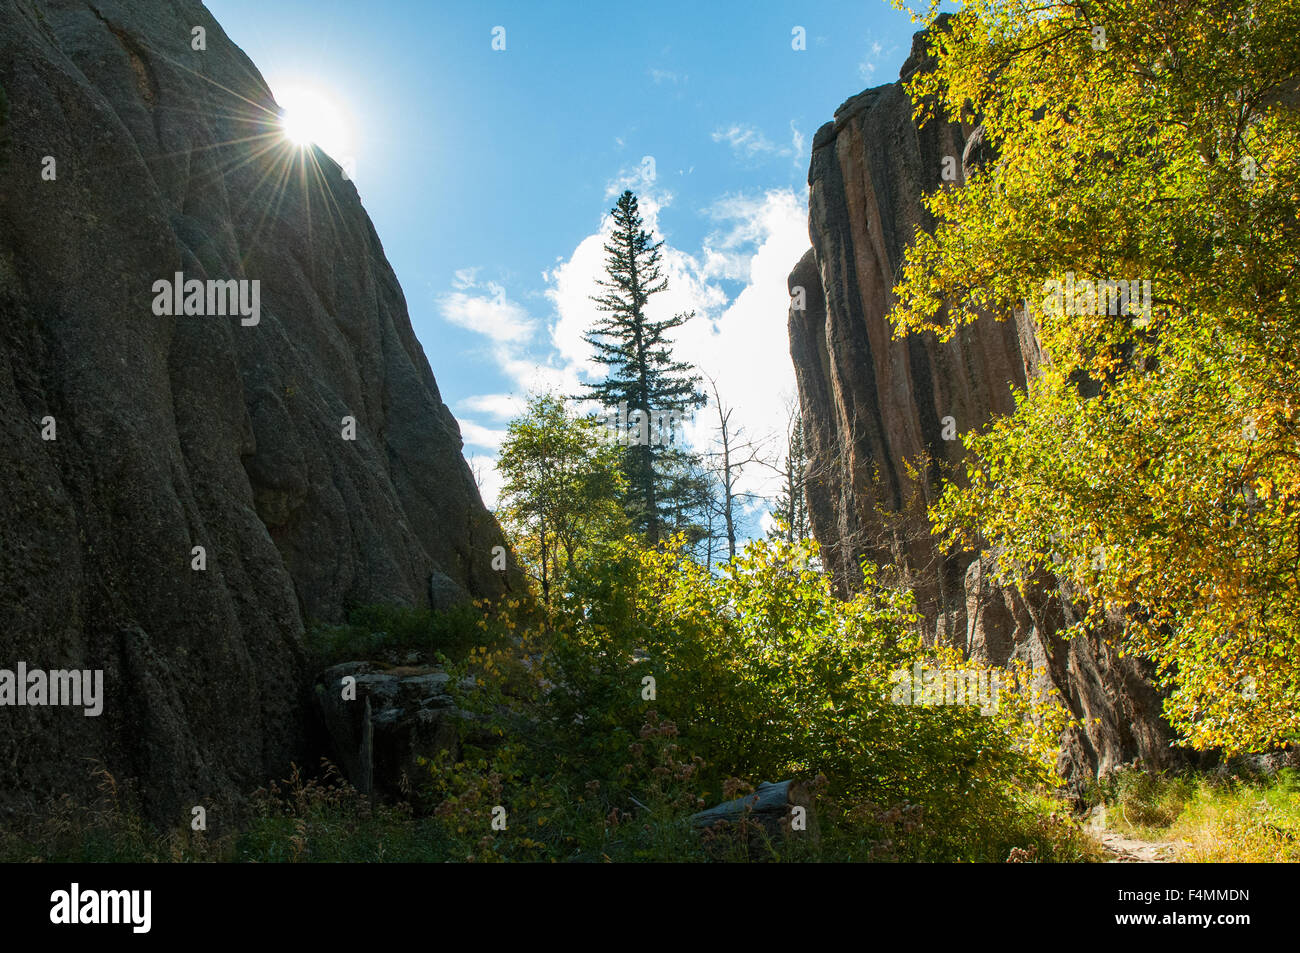 View at Sylvan Lake, Custer State Park, South Dakota, USA - Stock Image